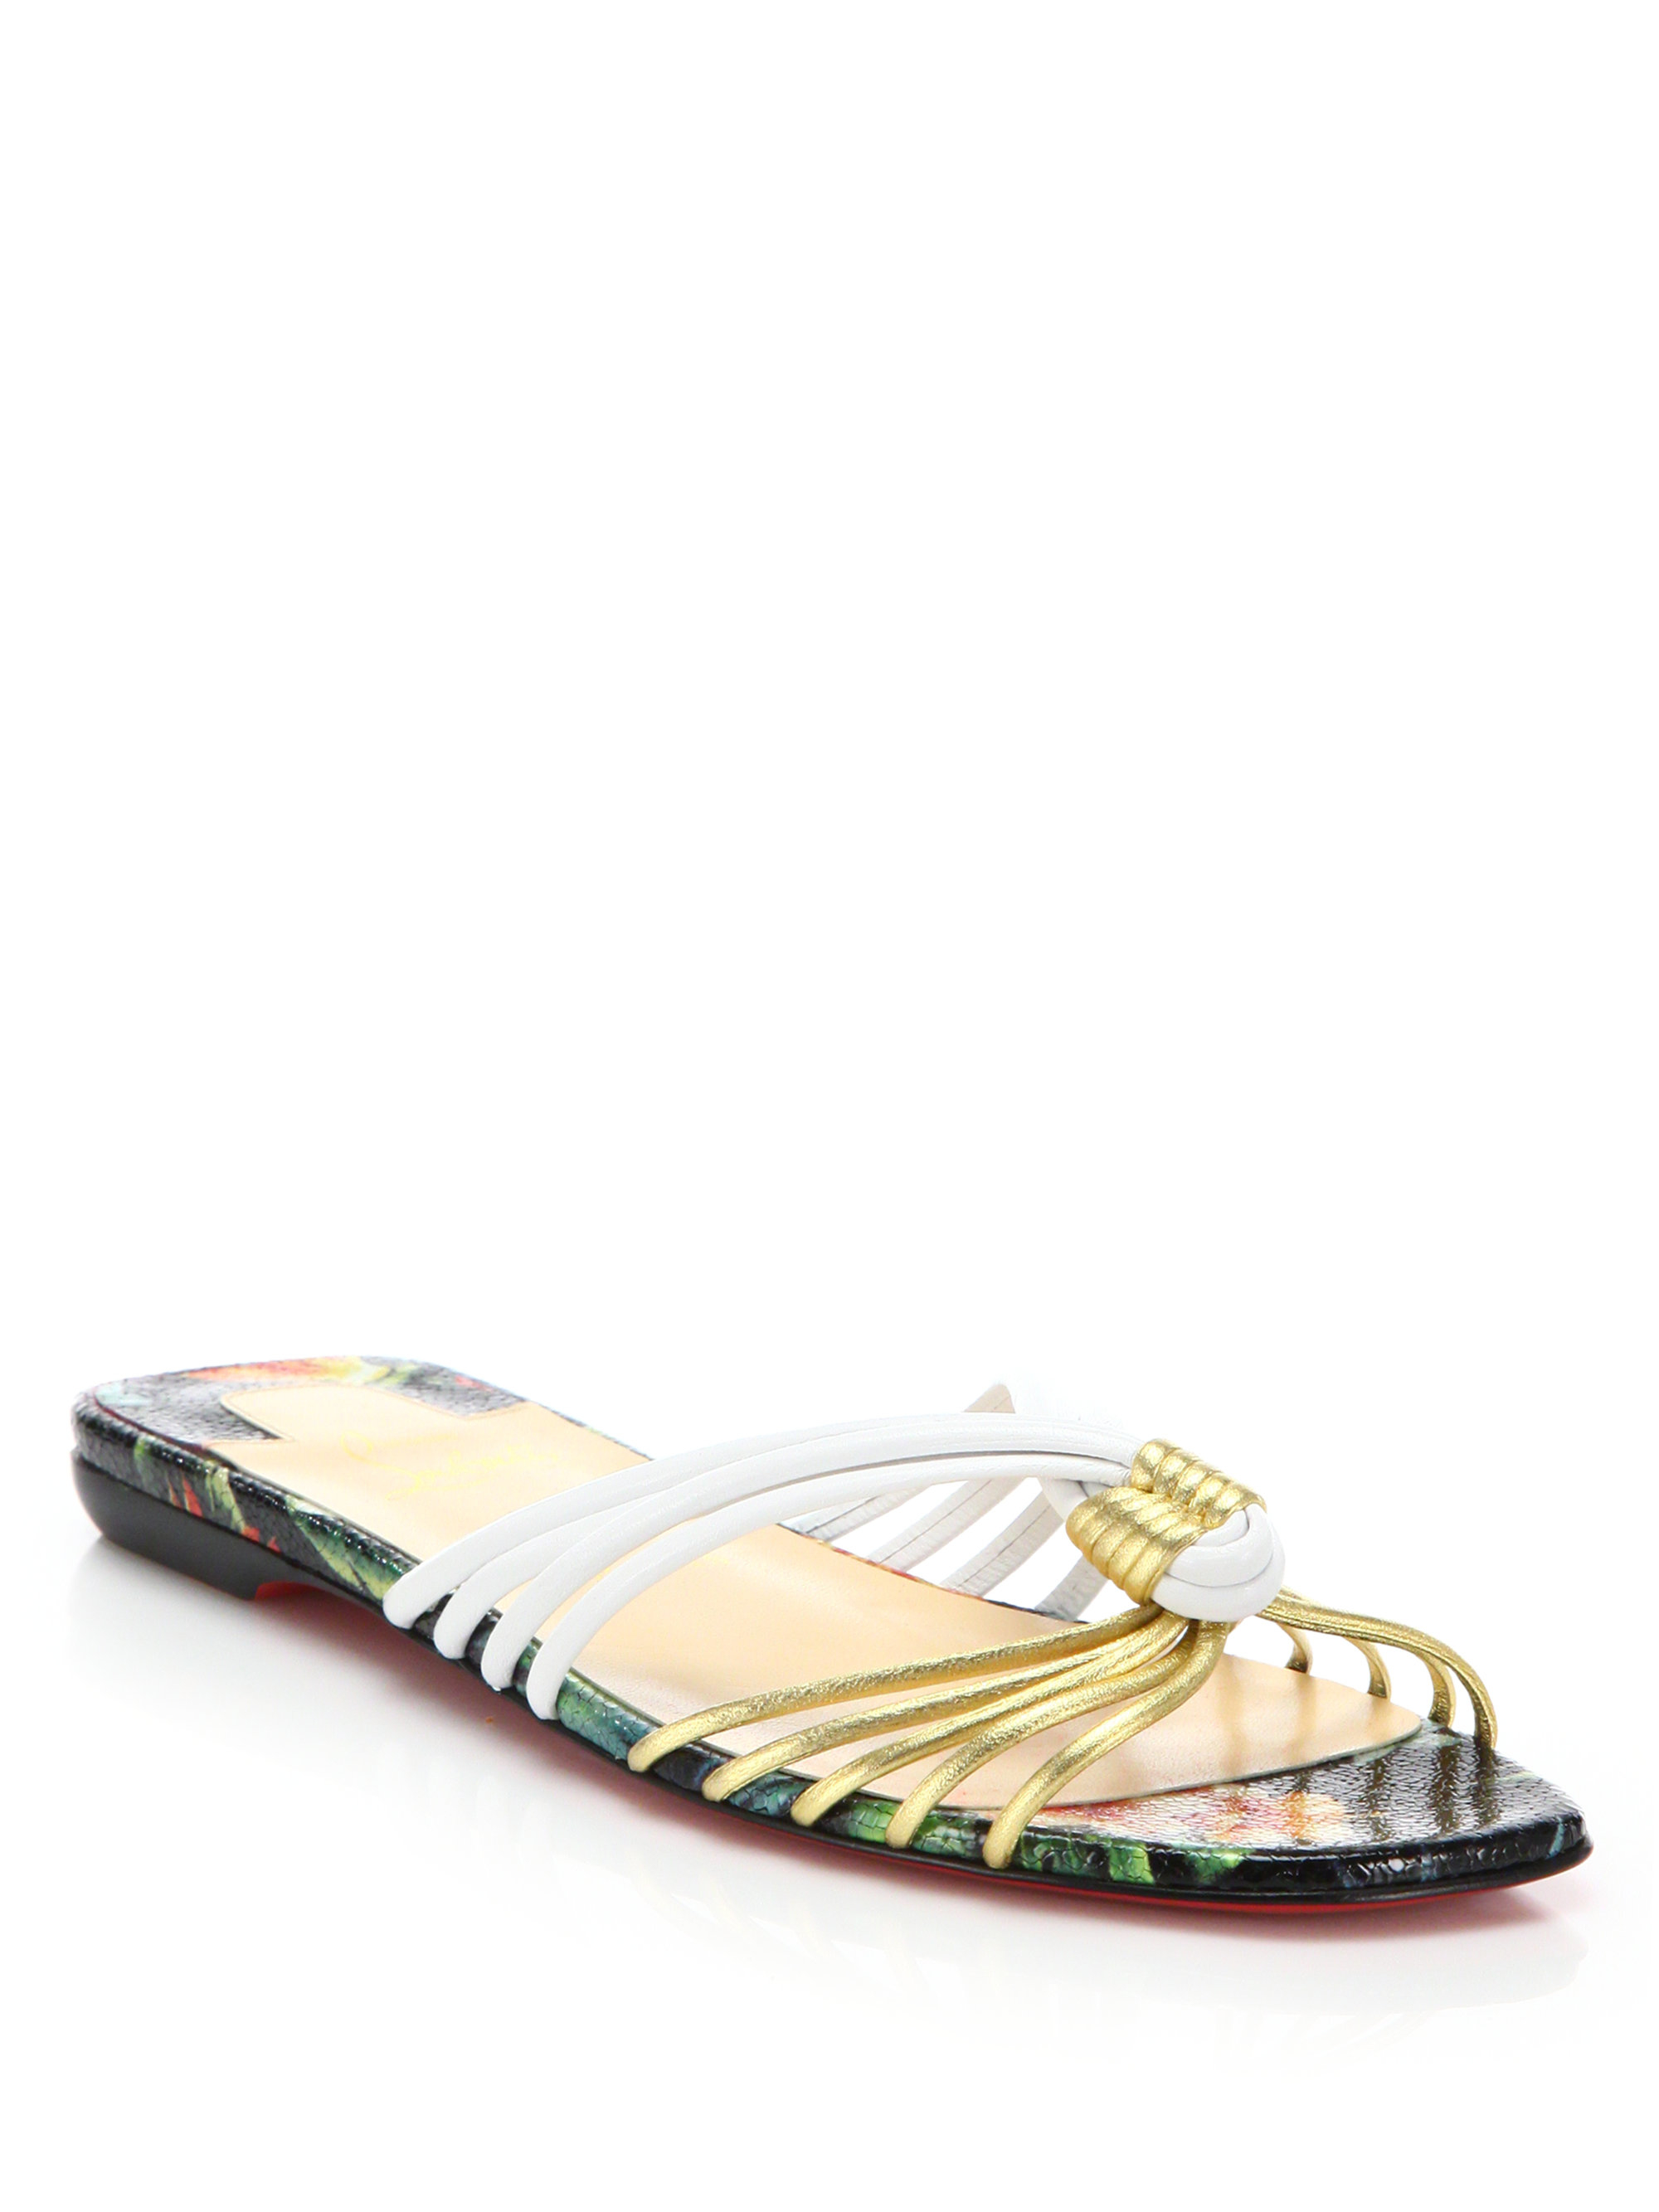 cheap christian louboutin flat sandals rh sesnews org